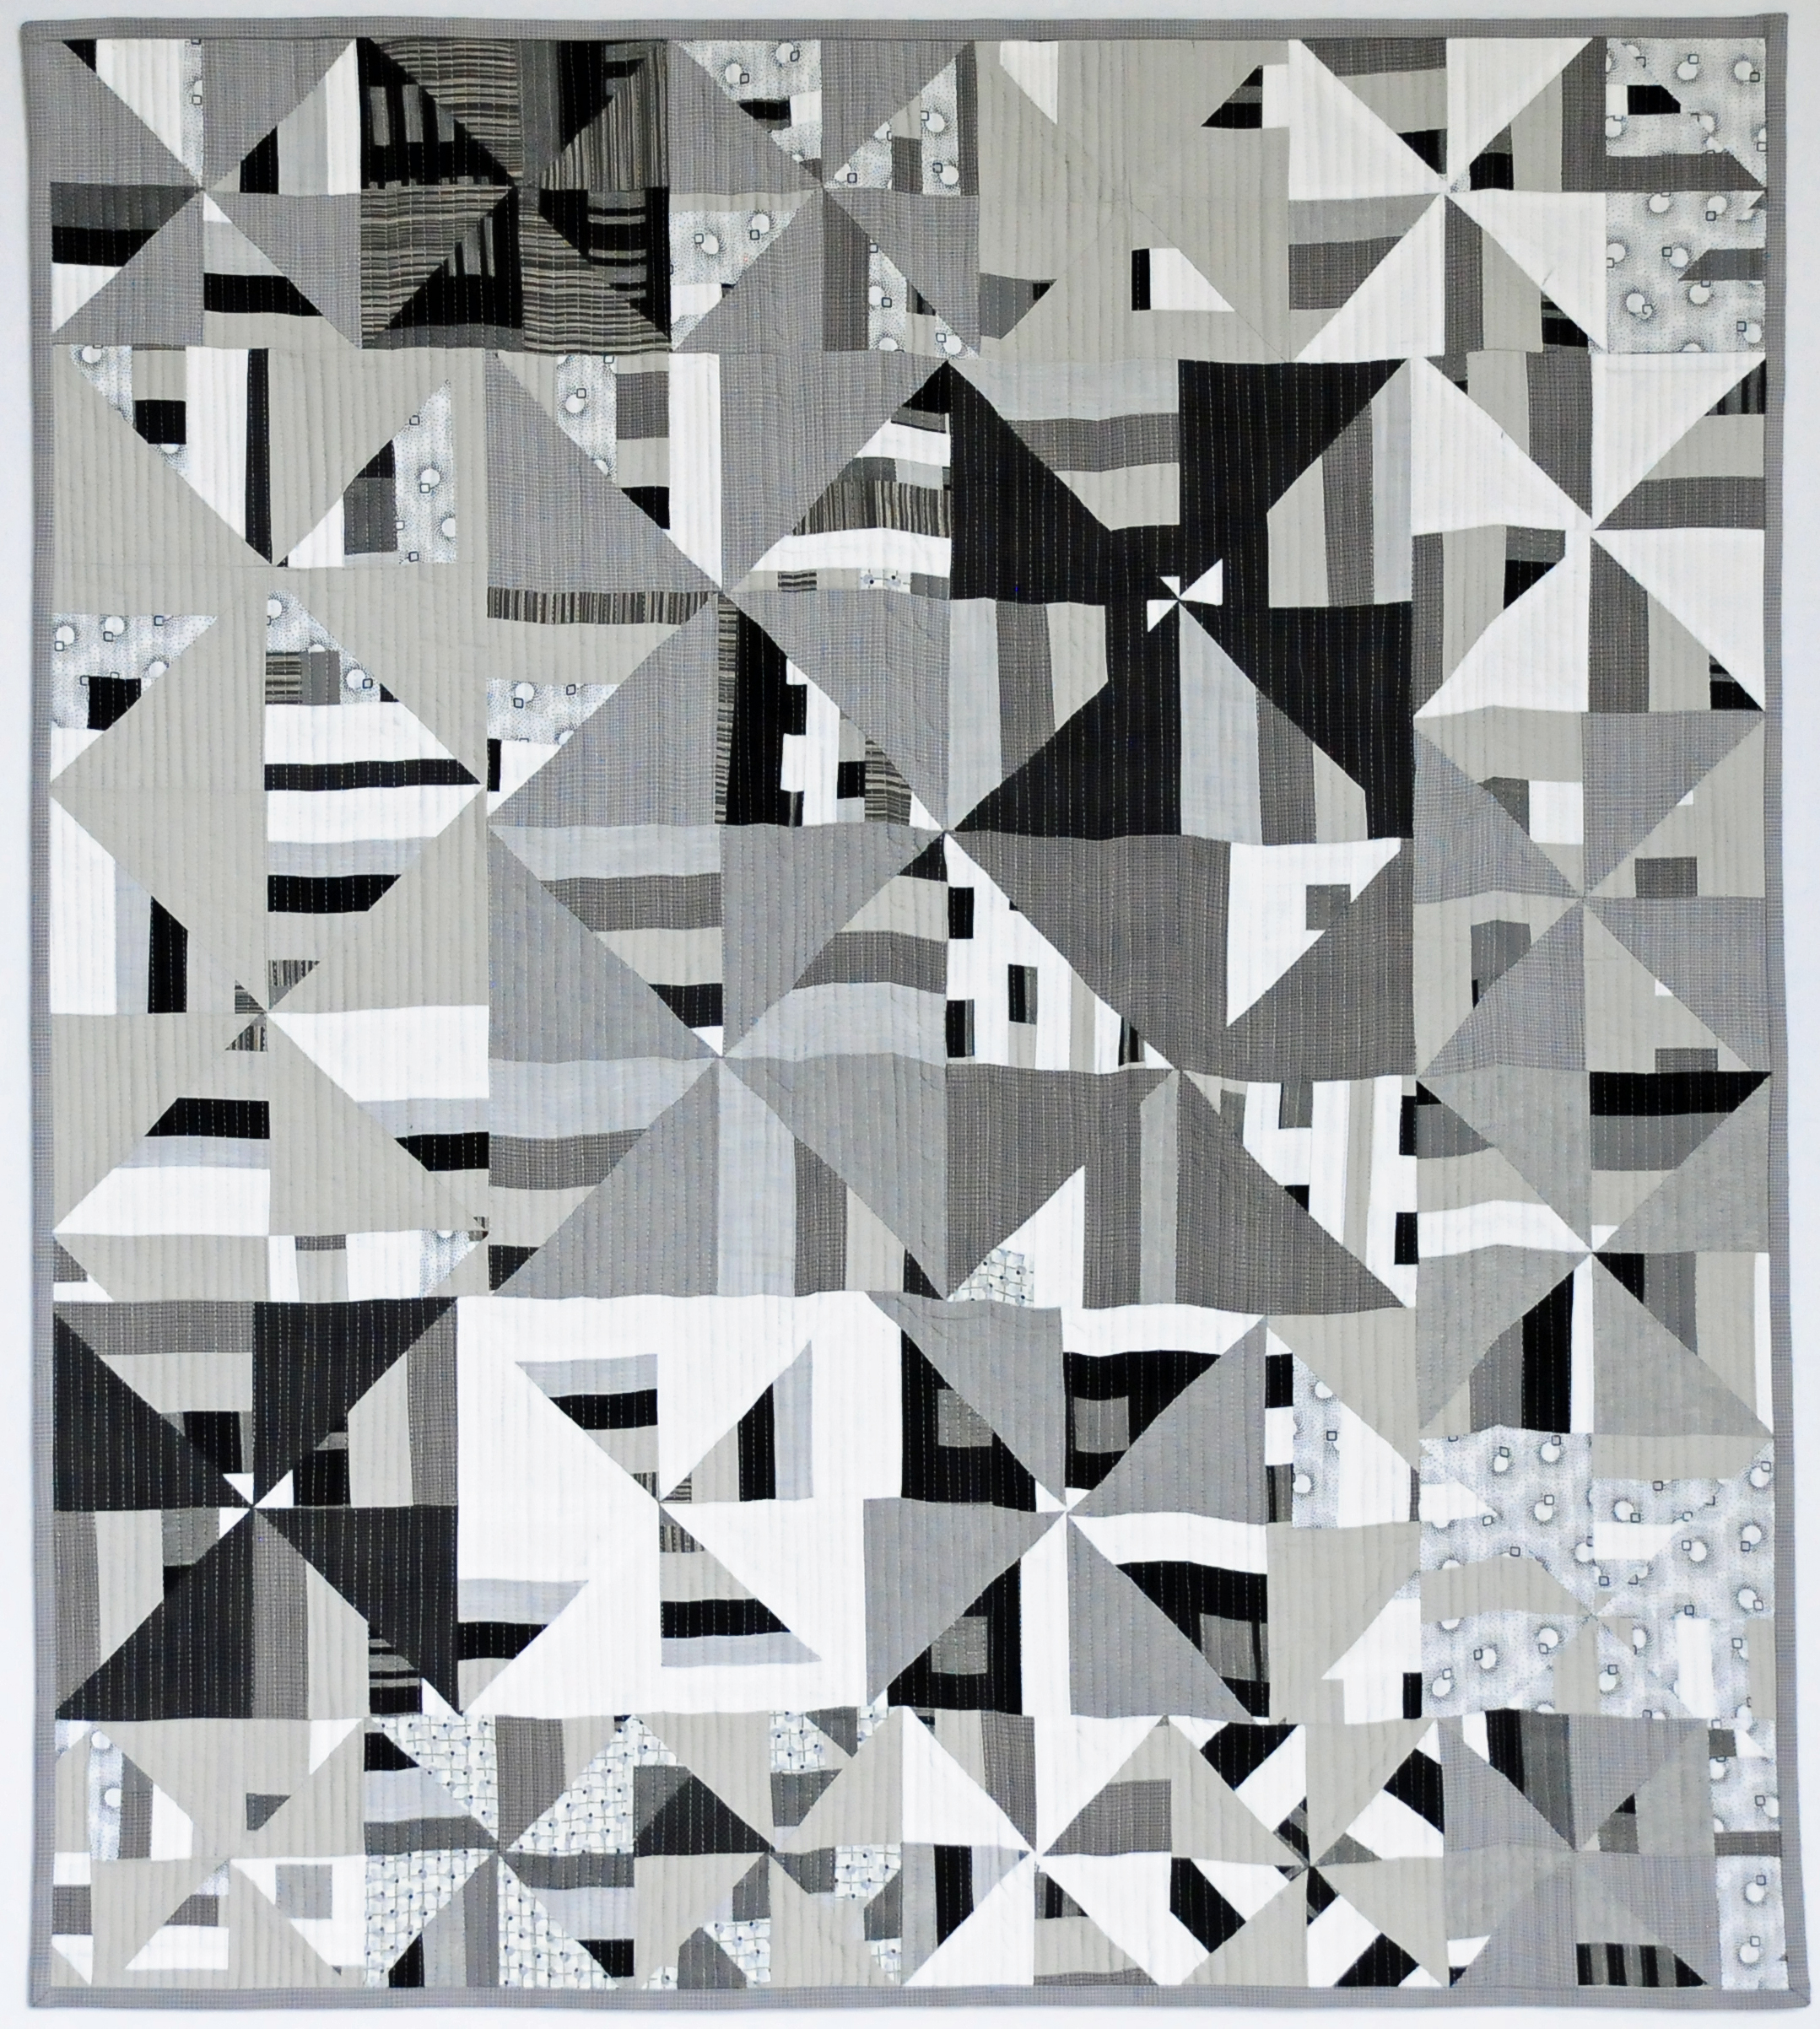 Shards of Glass, 30x34